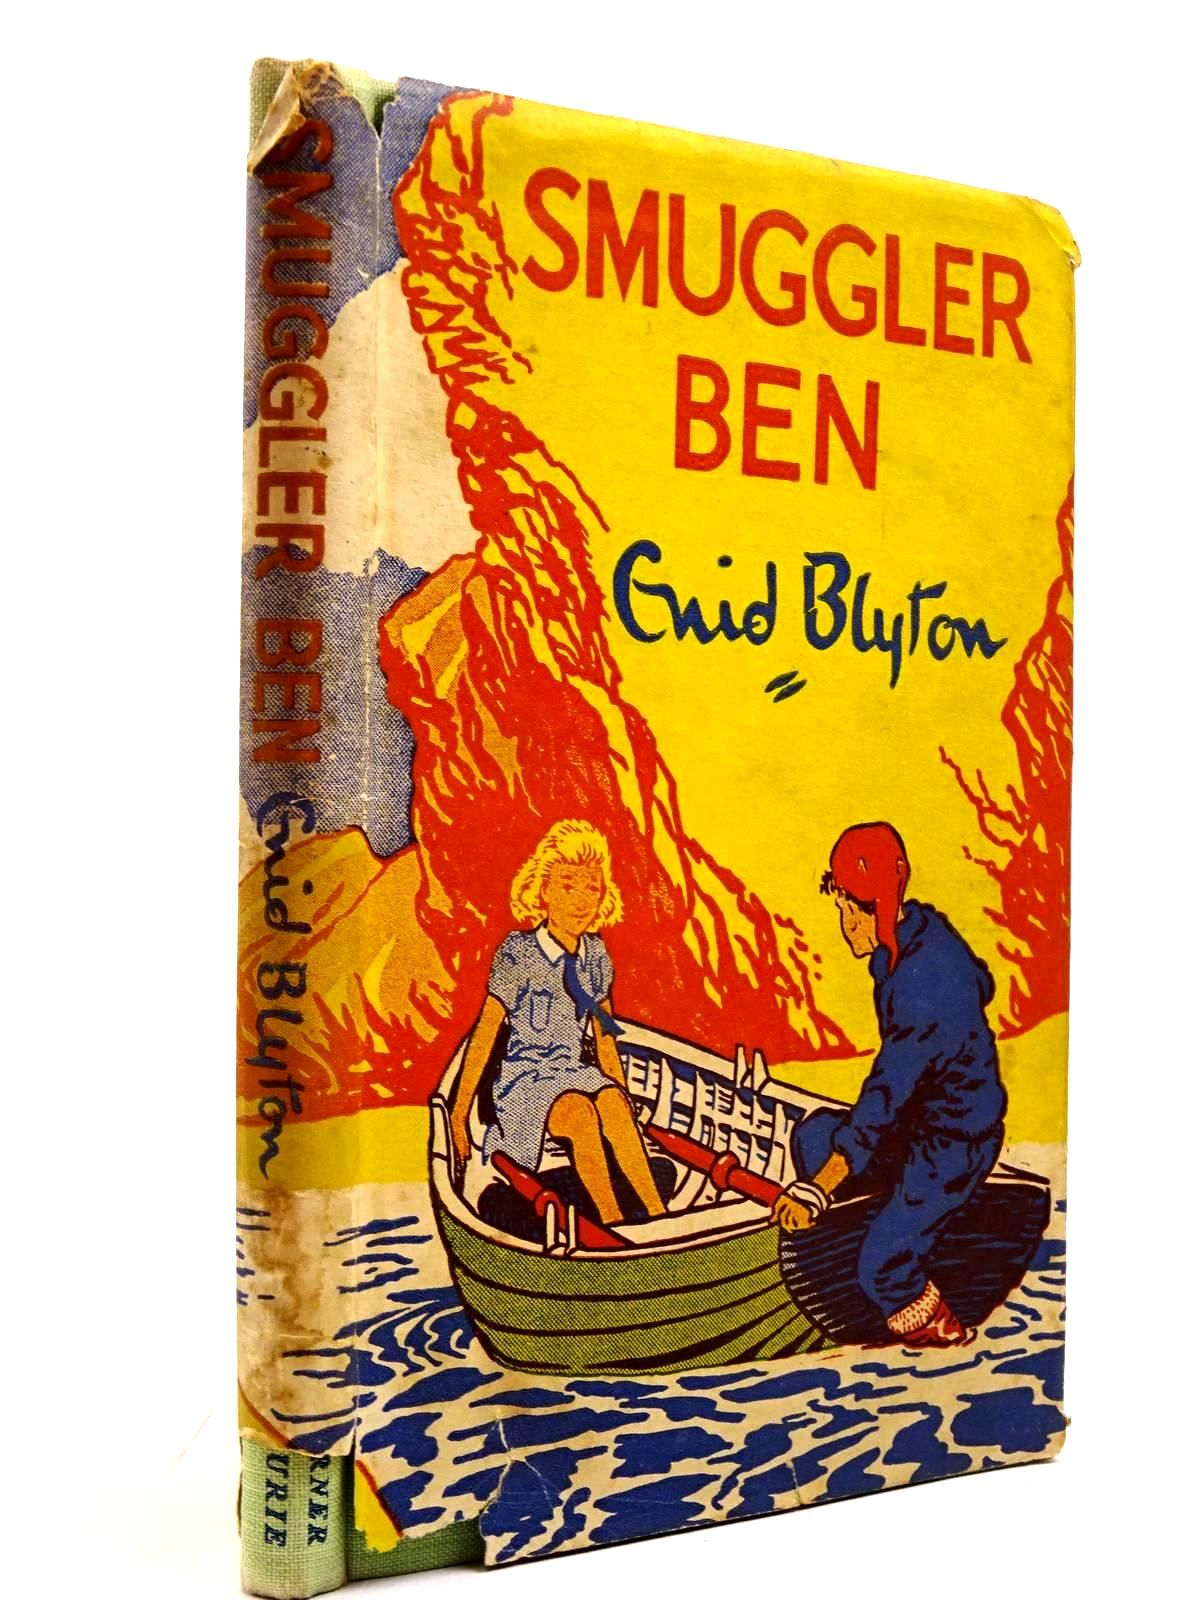 Photo of SMUGGLER BEN written by Blyton, Enid illustrated by Backhouse, G.W. published by Werner Laurie (STOCK CODE: 2130662)  for sale by Stella & Rose's Books